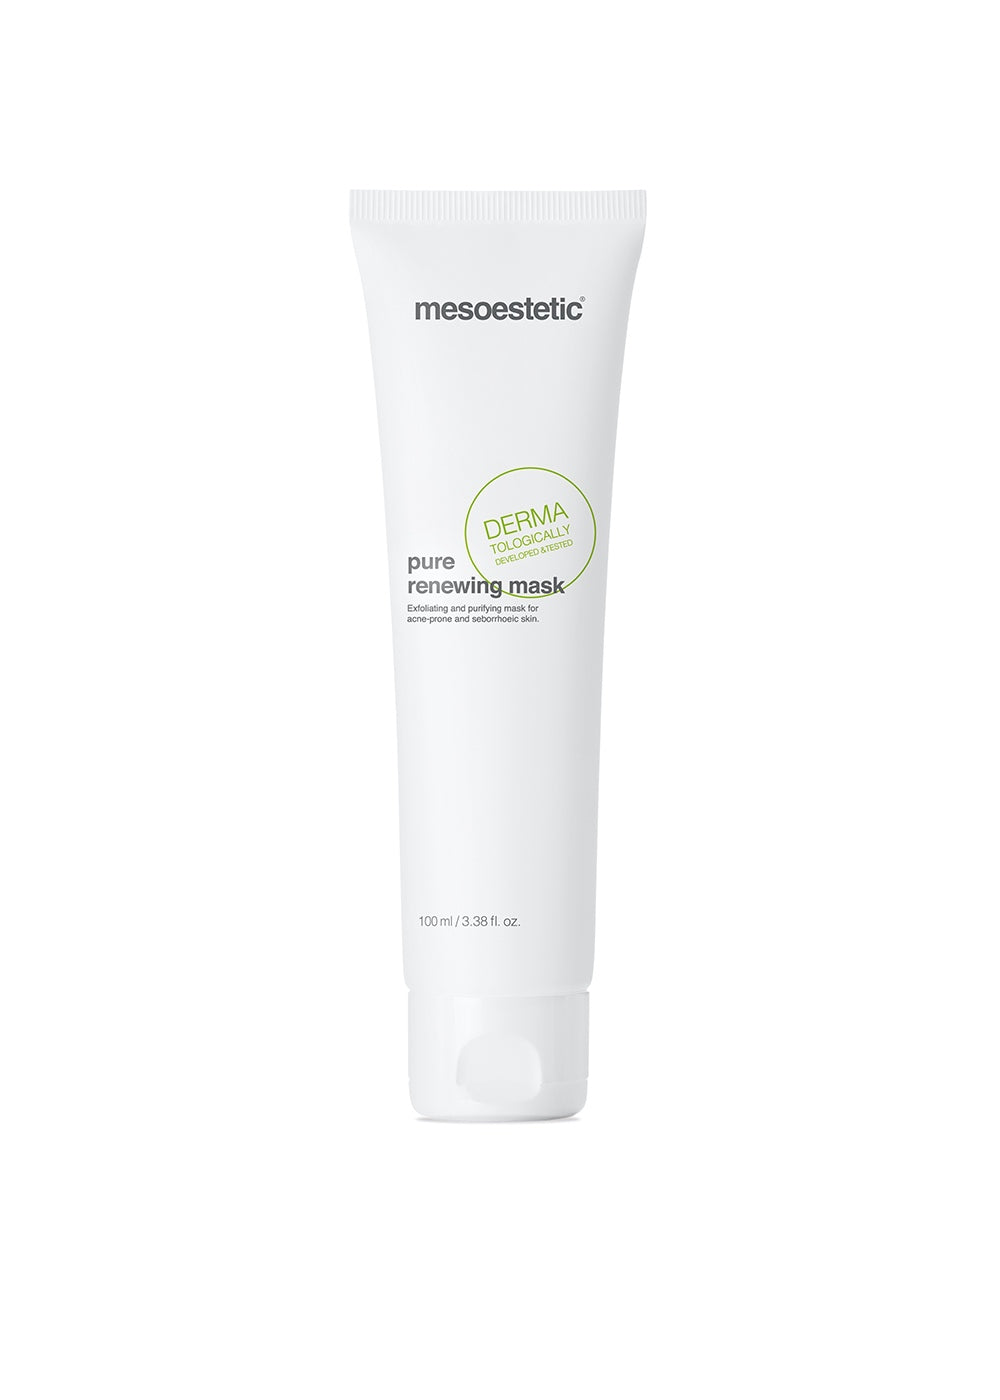 Mesoestetic Acne Line Pure Renewing Mask